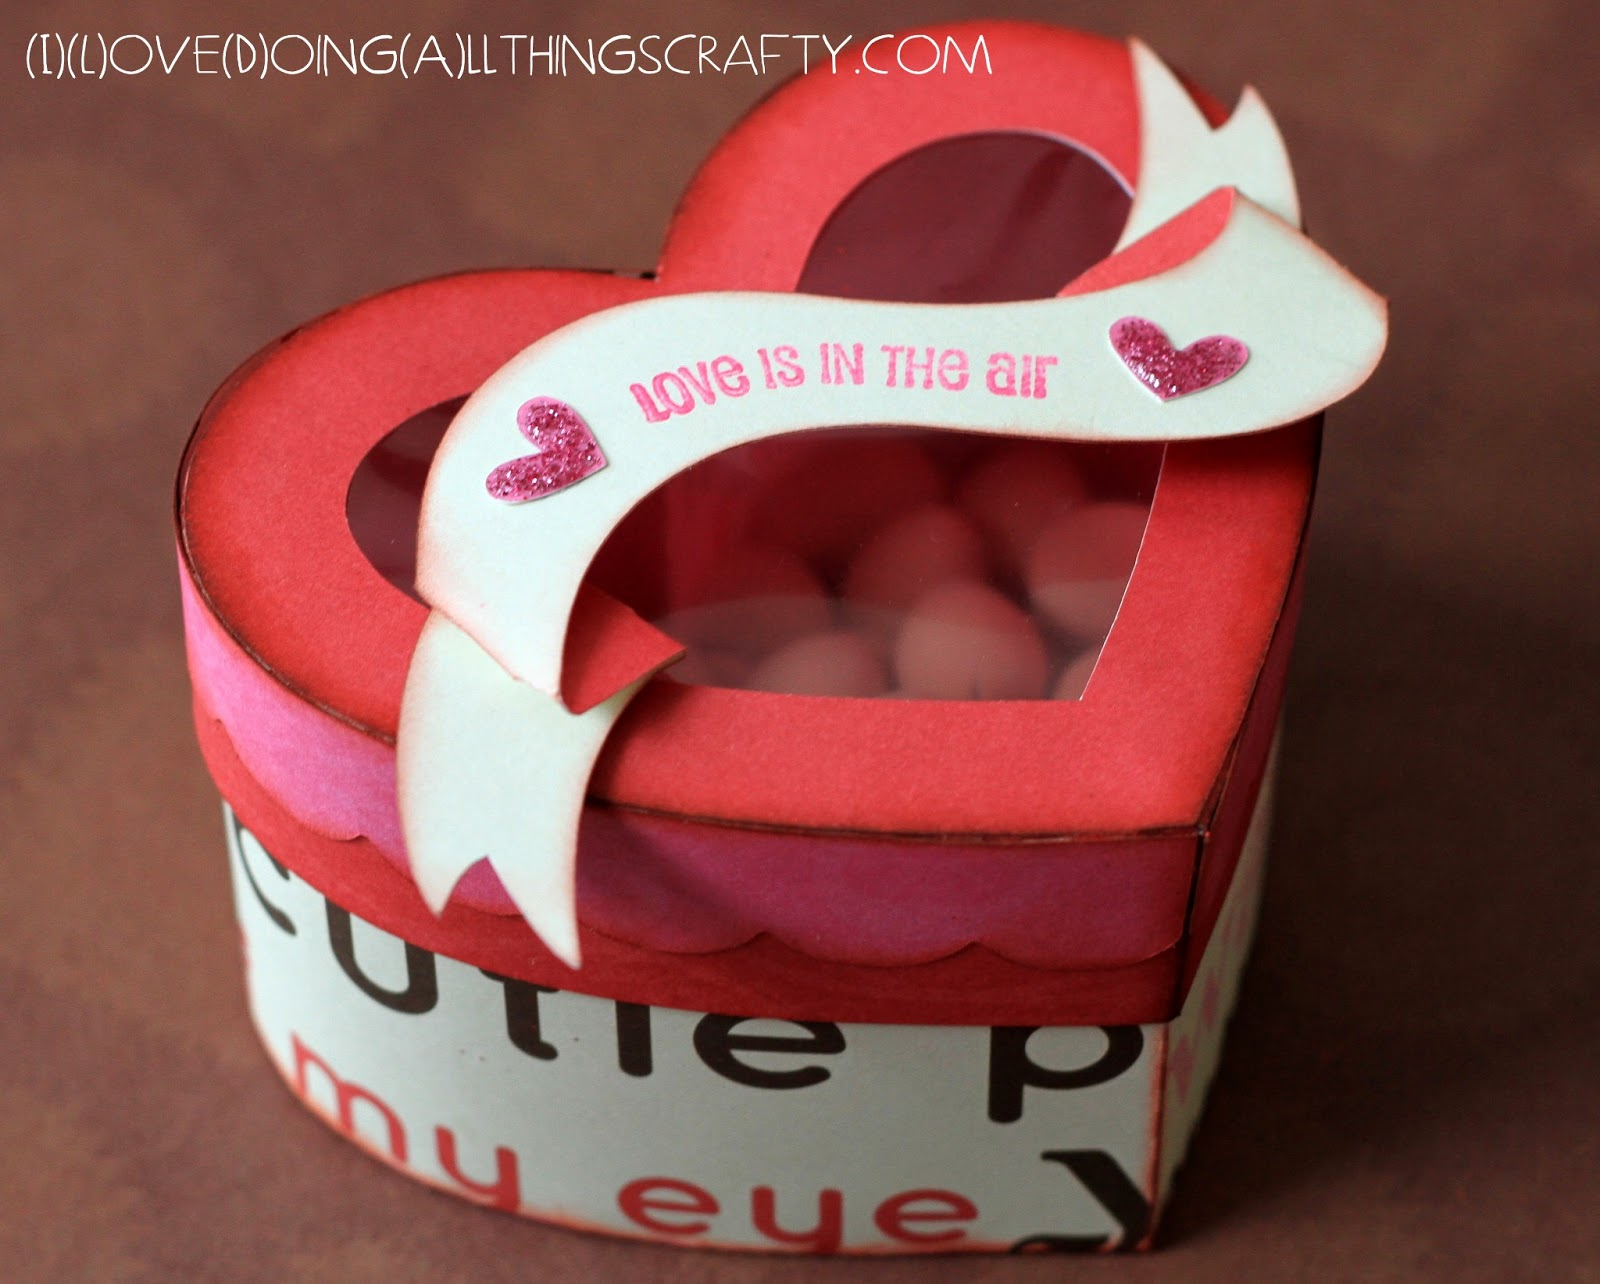 I) (L)ove (D)oing (A)ll Things Crafty!For my ValentineHeart